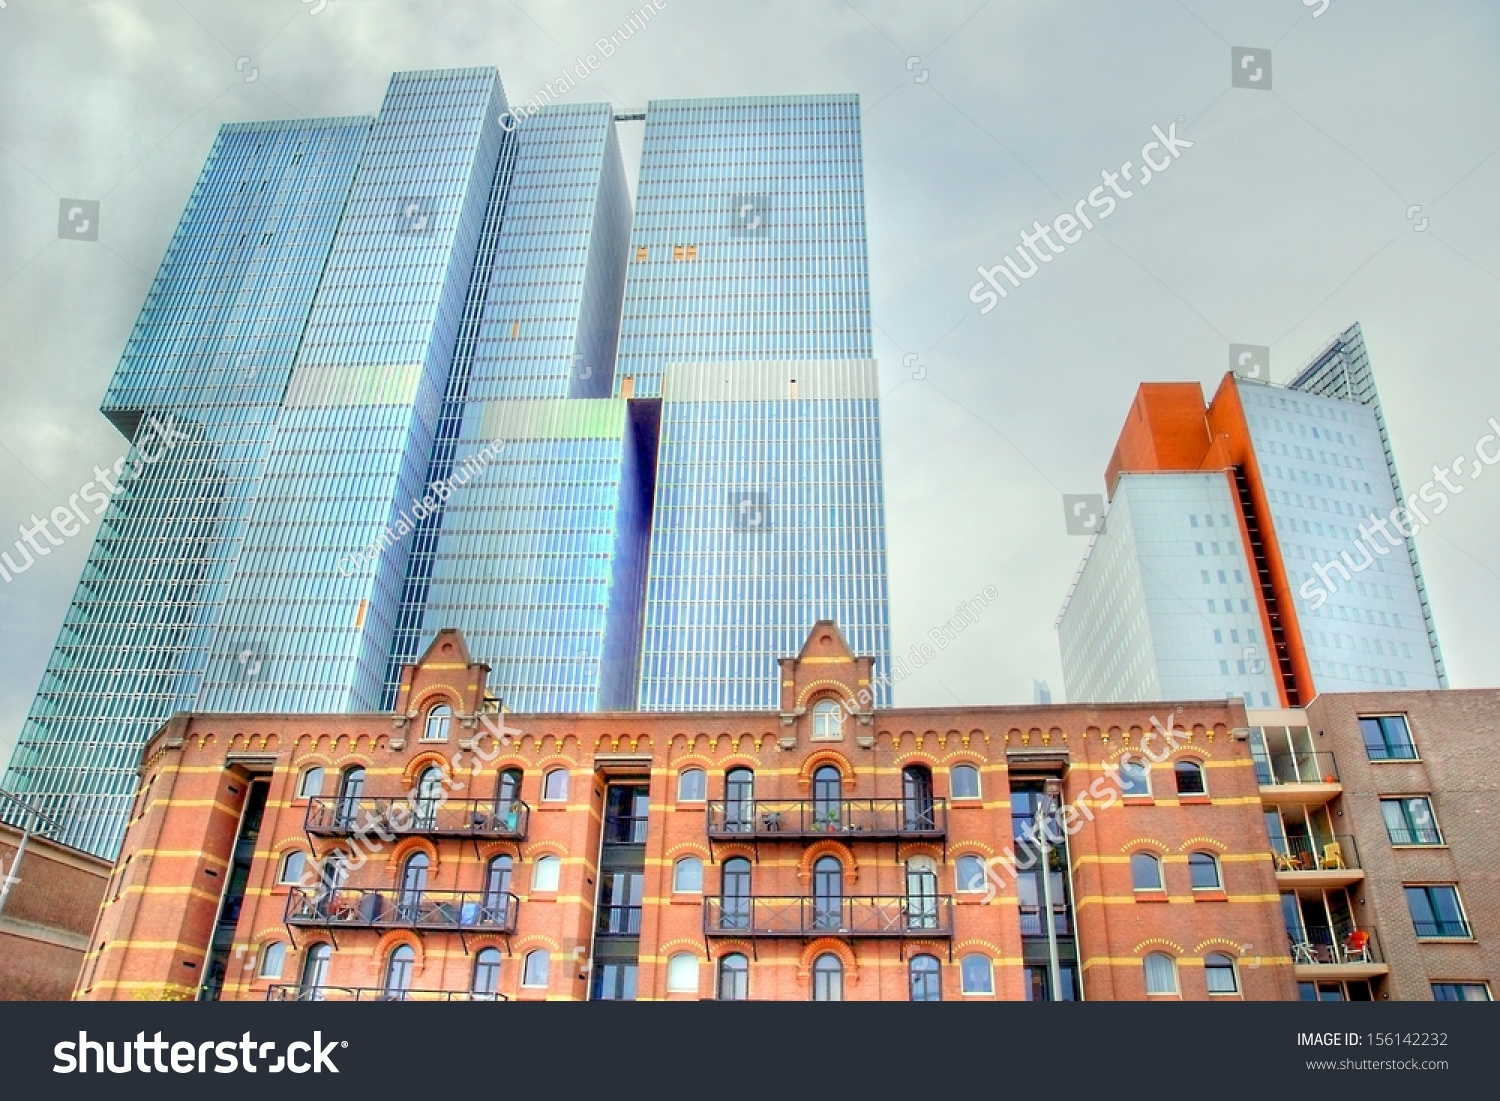 Awesome Extreme Hdr Image Building Rotterdam South Stock Photo 156142232    Shutterstock